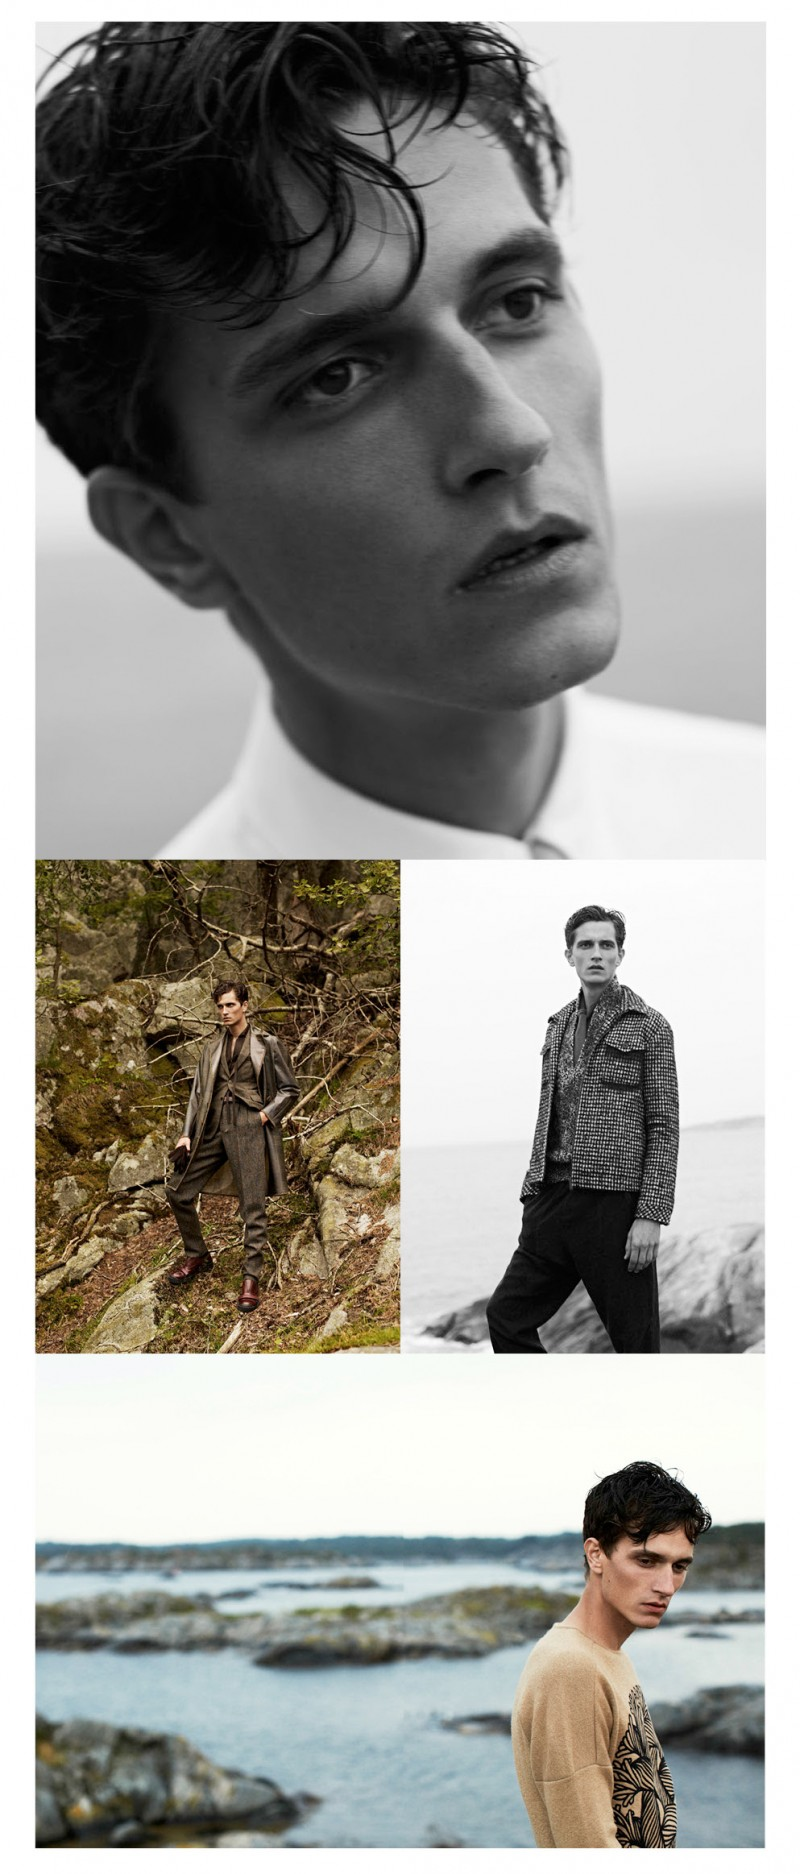 Nest model Jakob Wiechmann graces the pages of Bolero Men magazine with a new story shot by photographer Stian Foss. Venturing outdoors for mesmerizing shots with a serene mood, Jakob models fashions from brands such as Louis Vuitton.